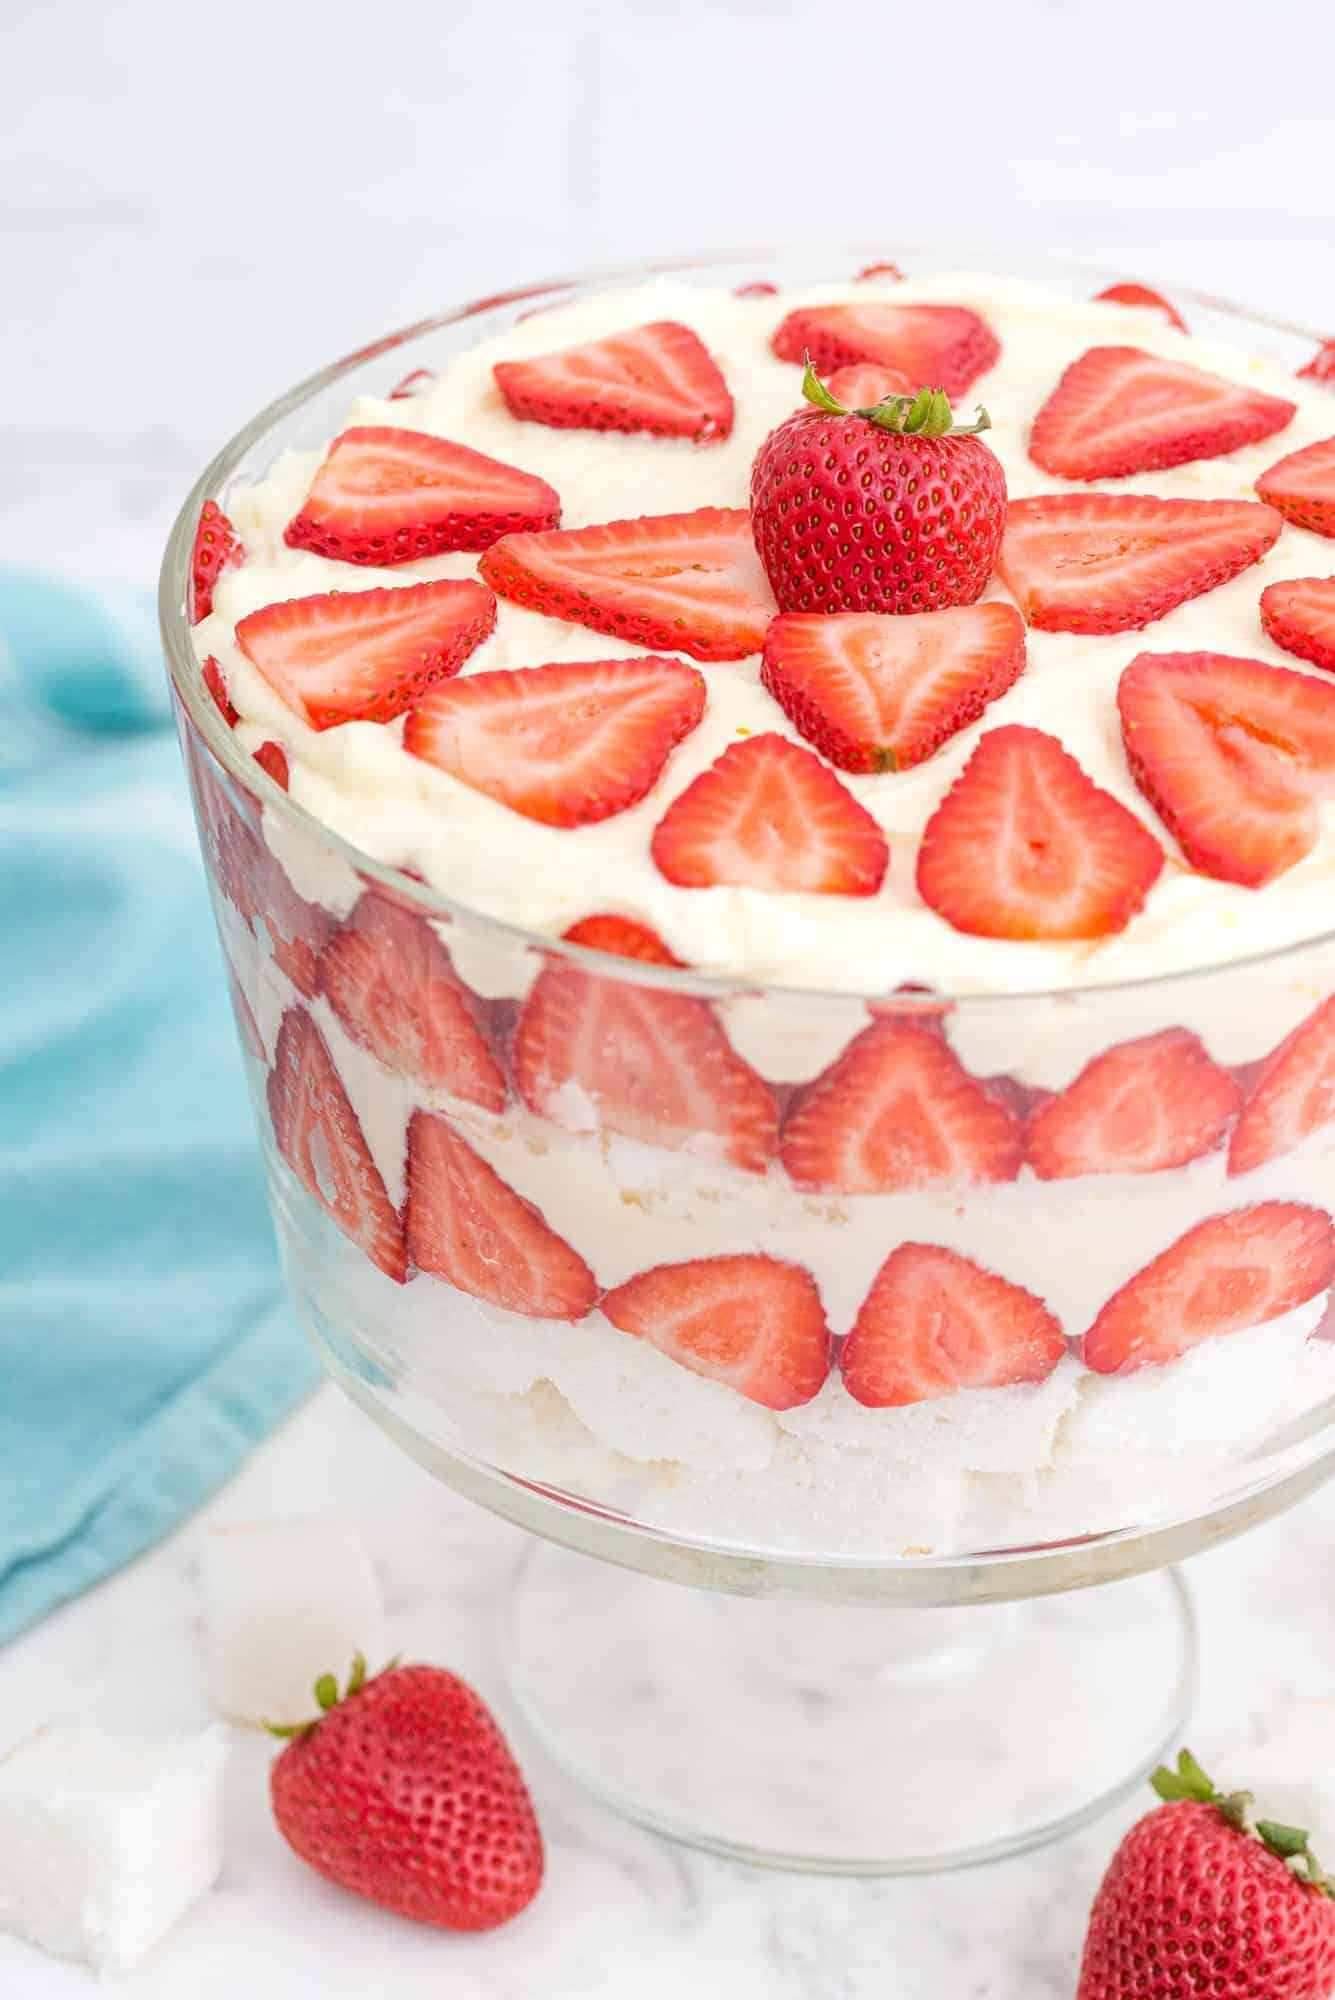 Trifle made with layers of strawberries, angel food cake, and pudding whipped cream mixture.